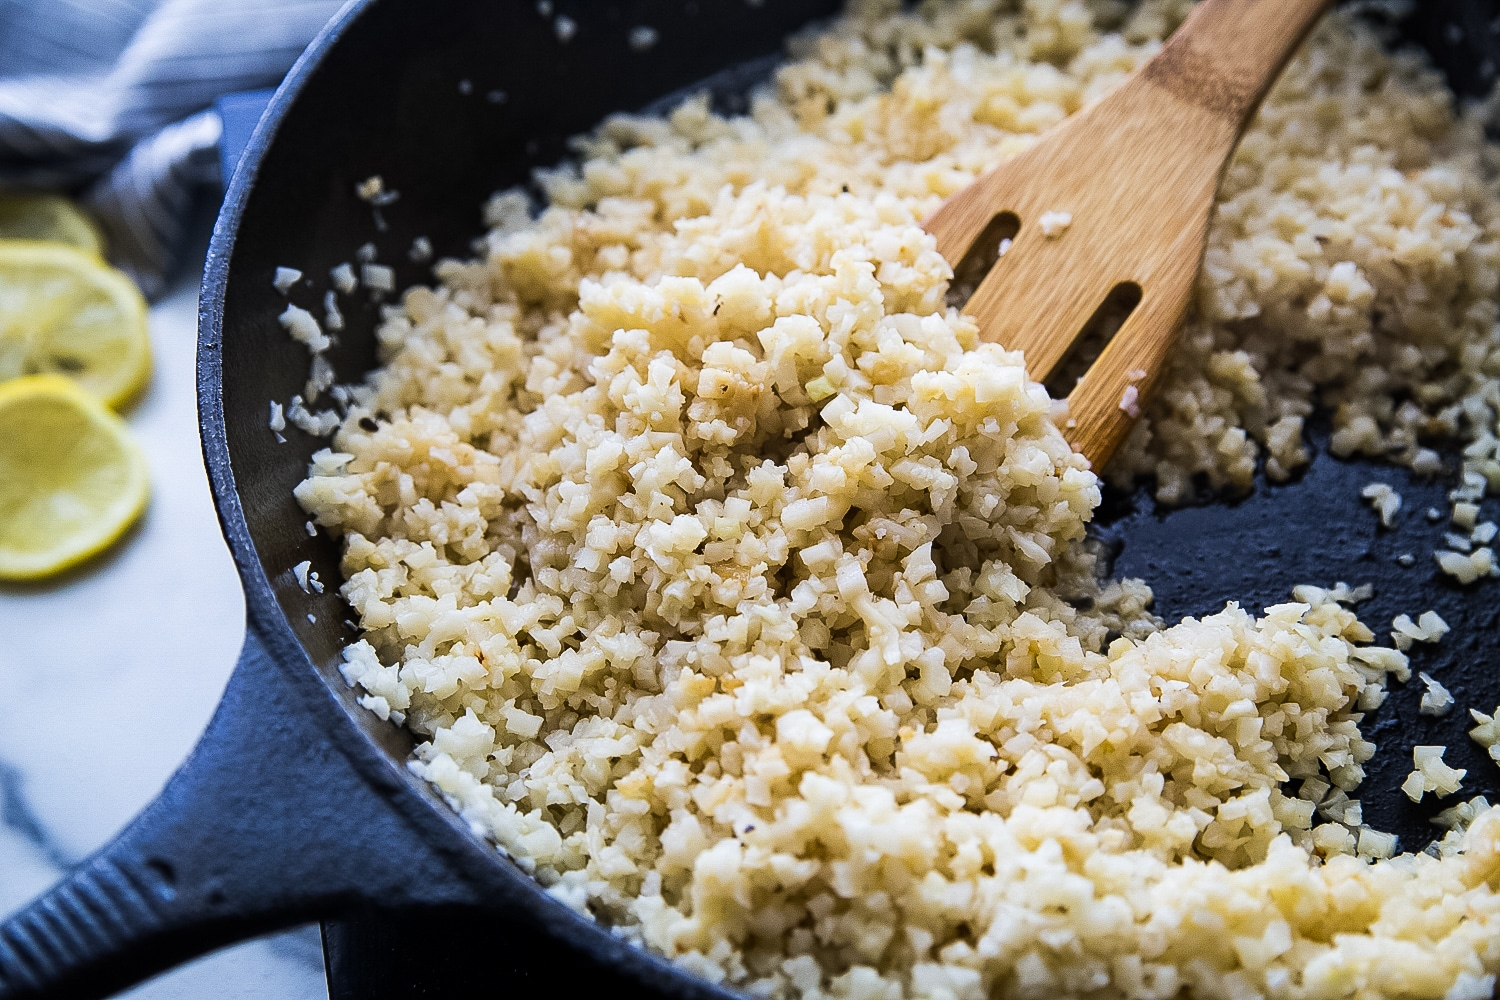 Riced cauliflower being fried in butter in a cast iron skillet.